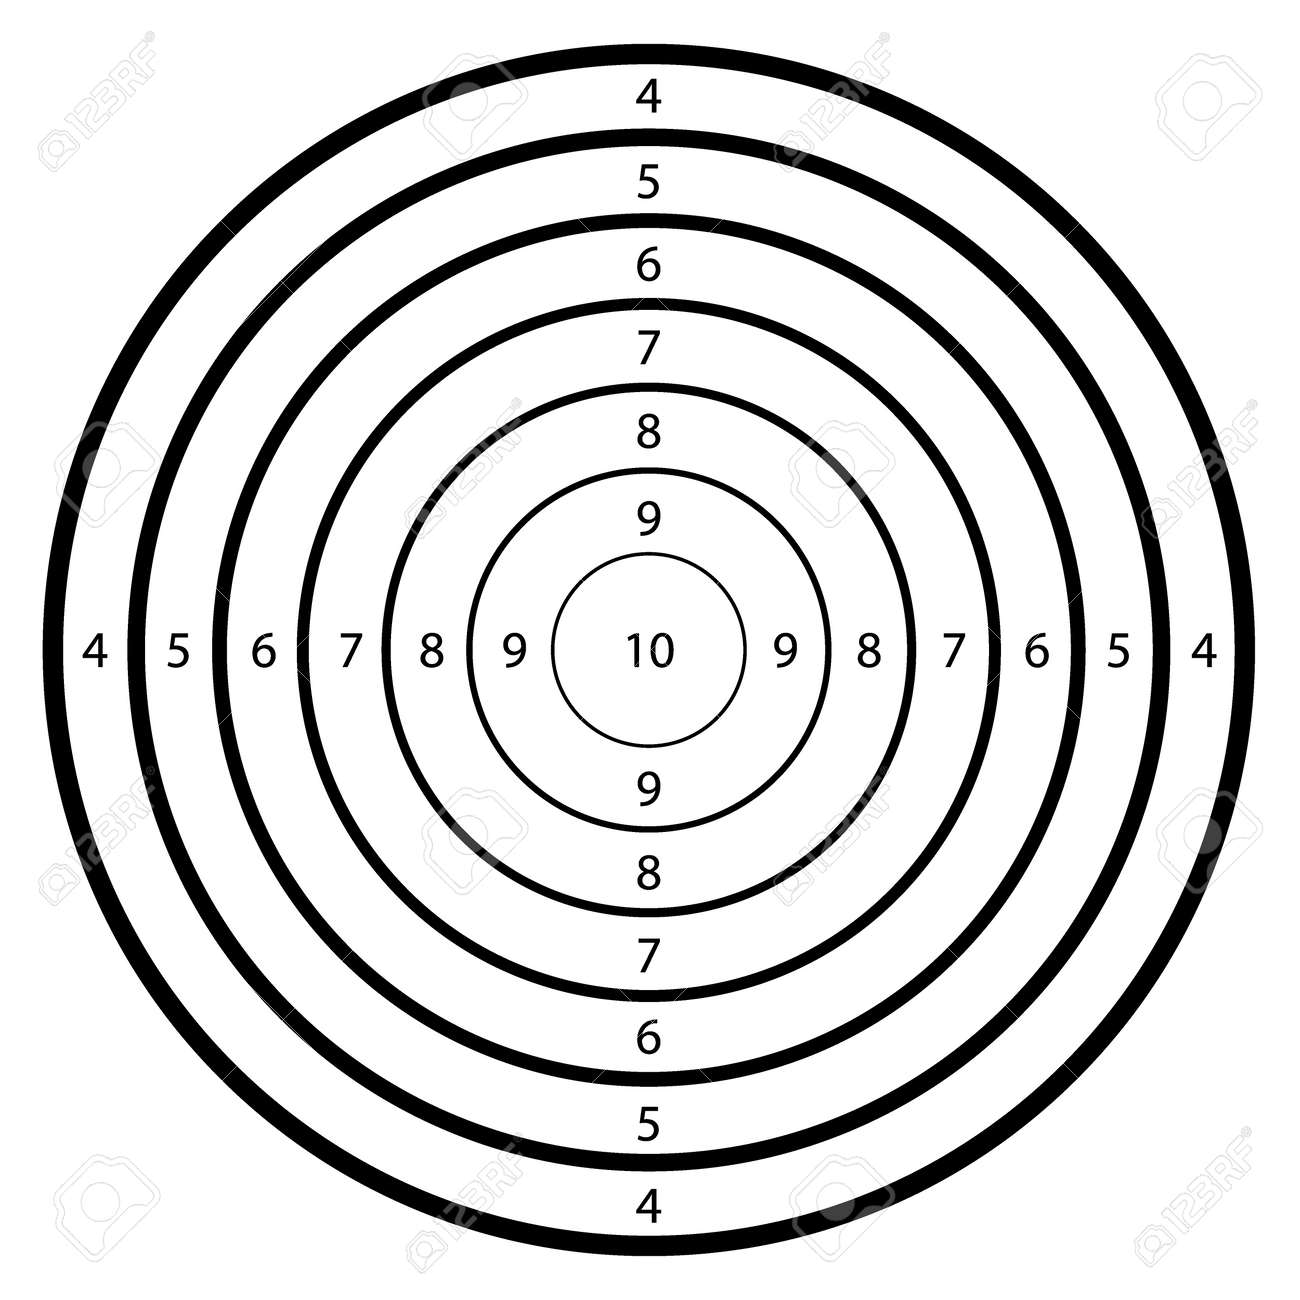 blank template for sport target shooting competition clean target